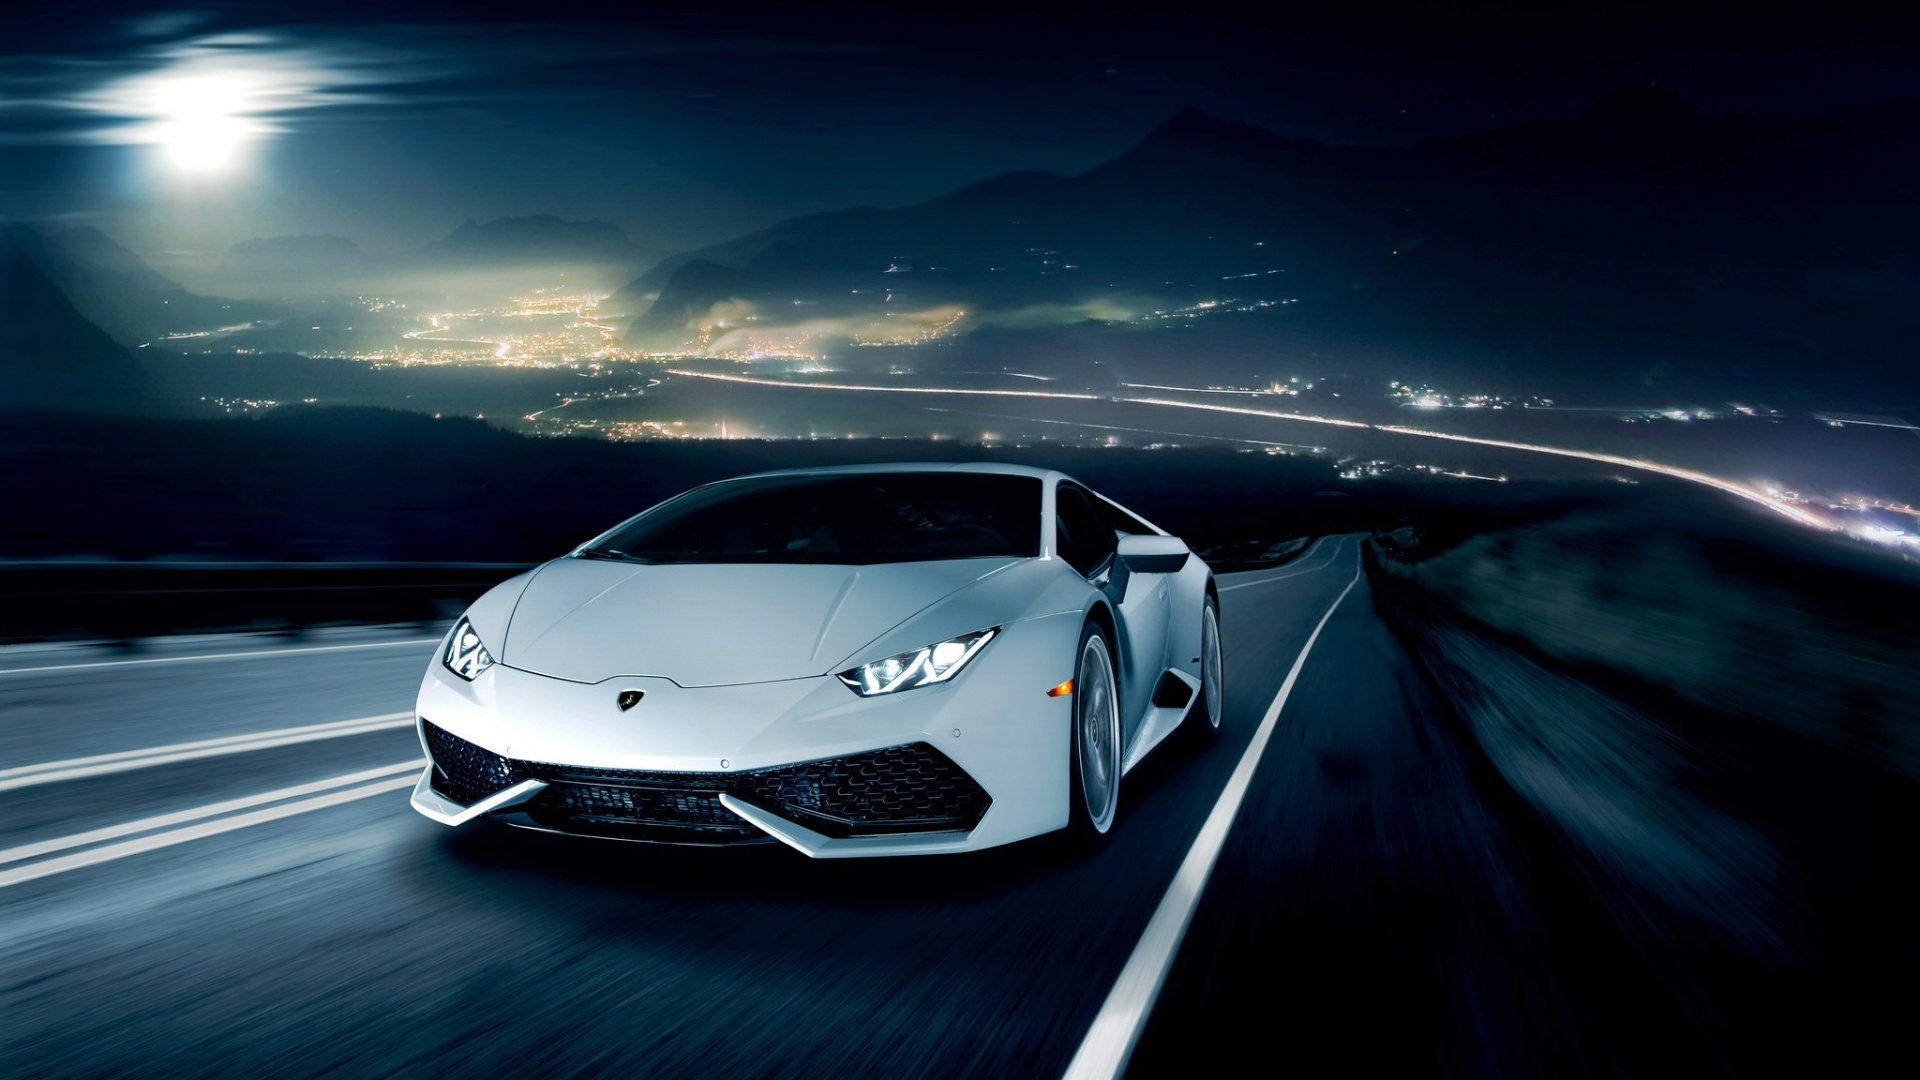 lamborghini huracan in the night wallpapers 1920x1080. Black Bedroom Furniture Sets. Home Design Ideas